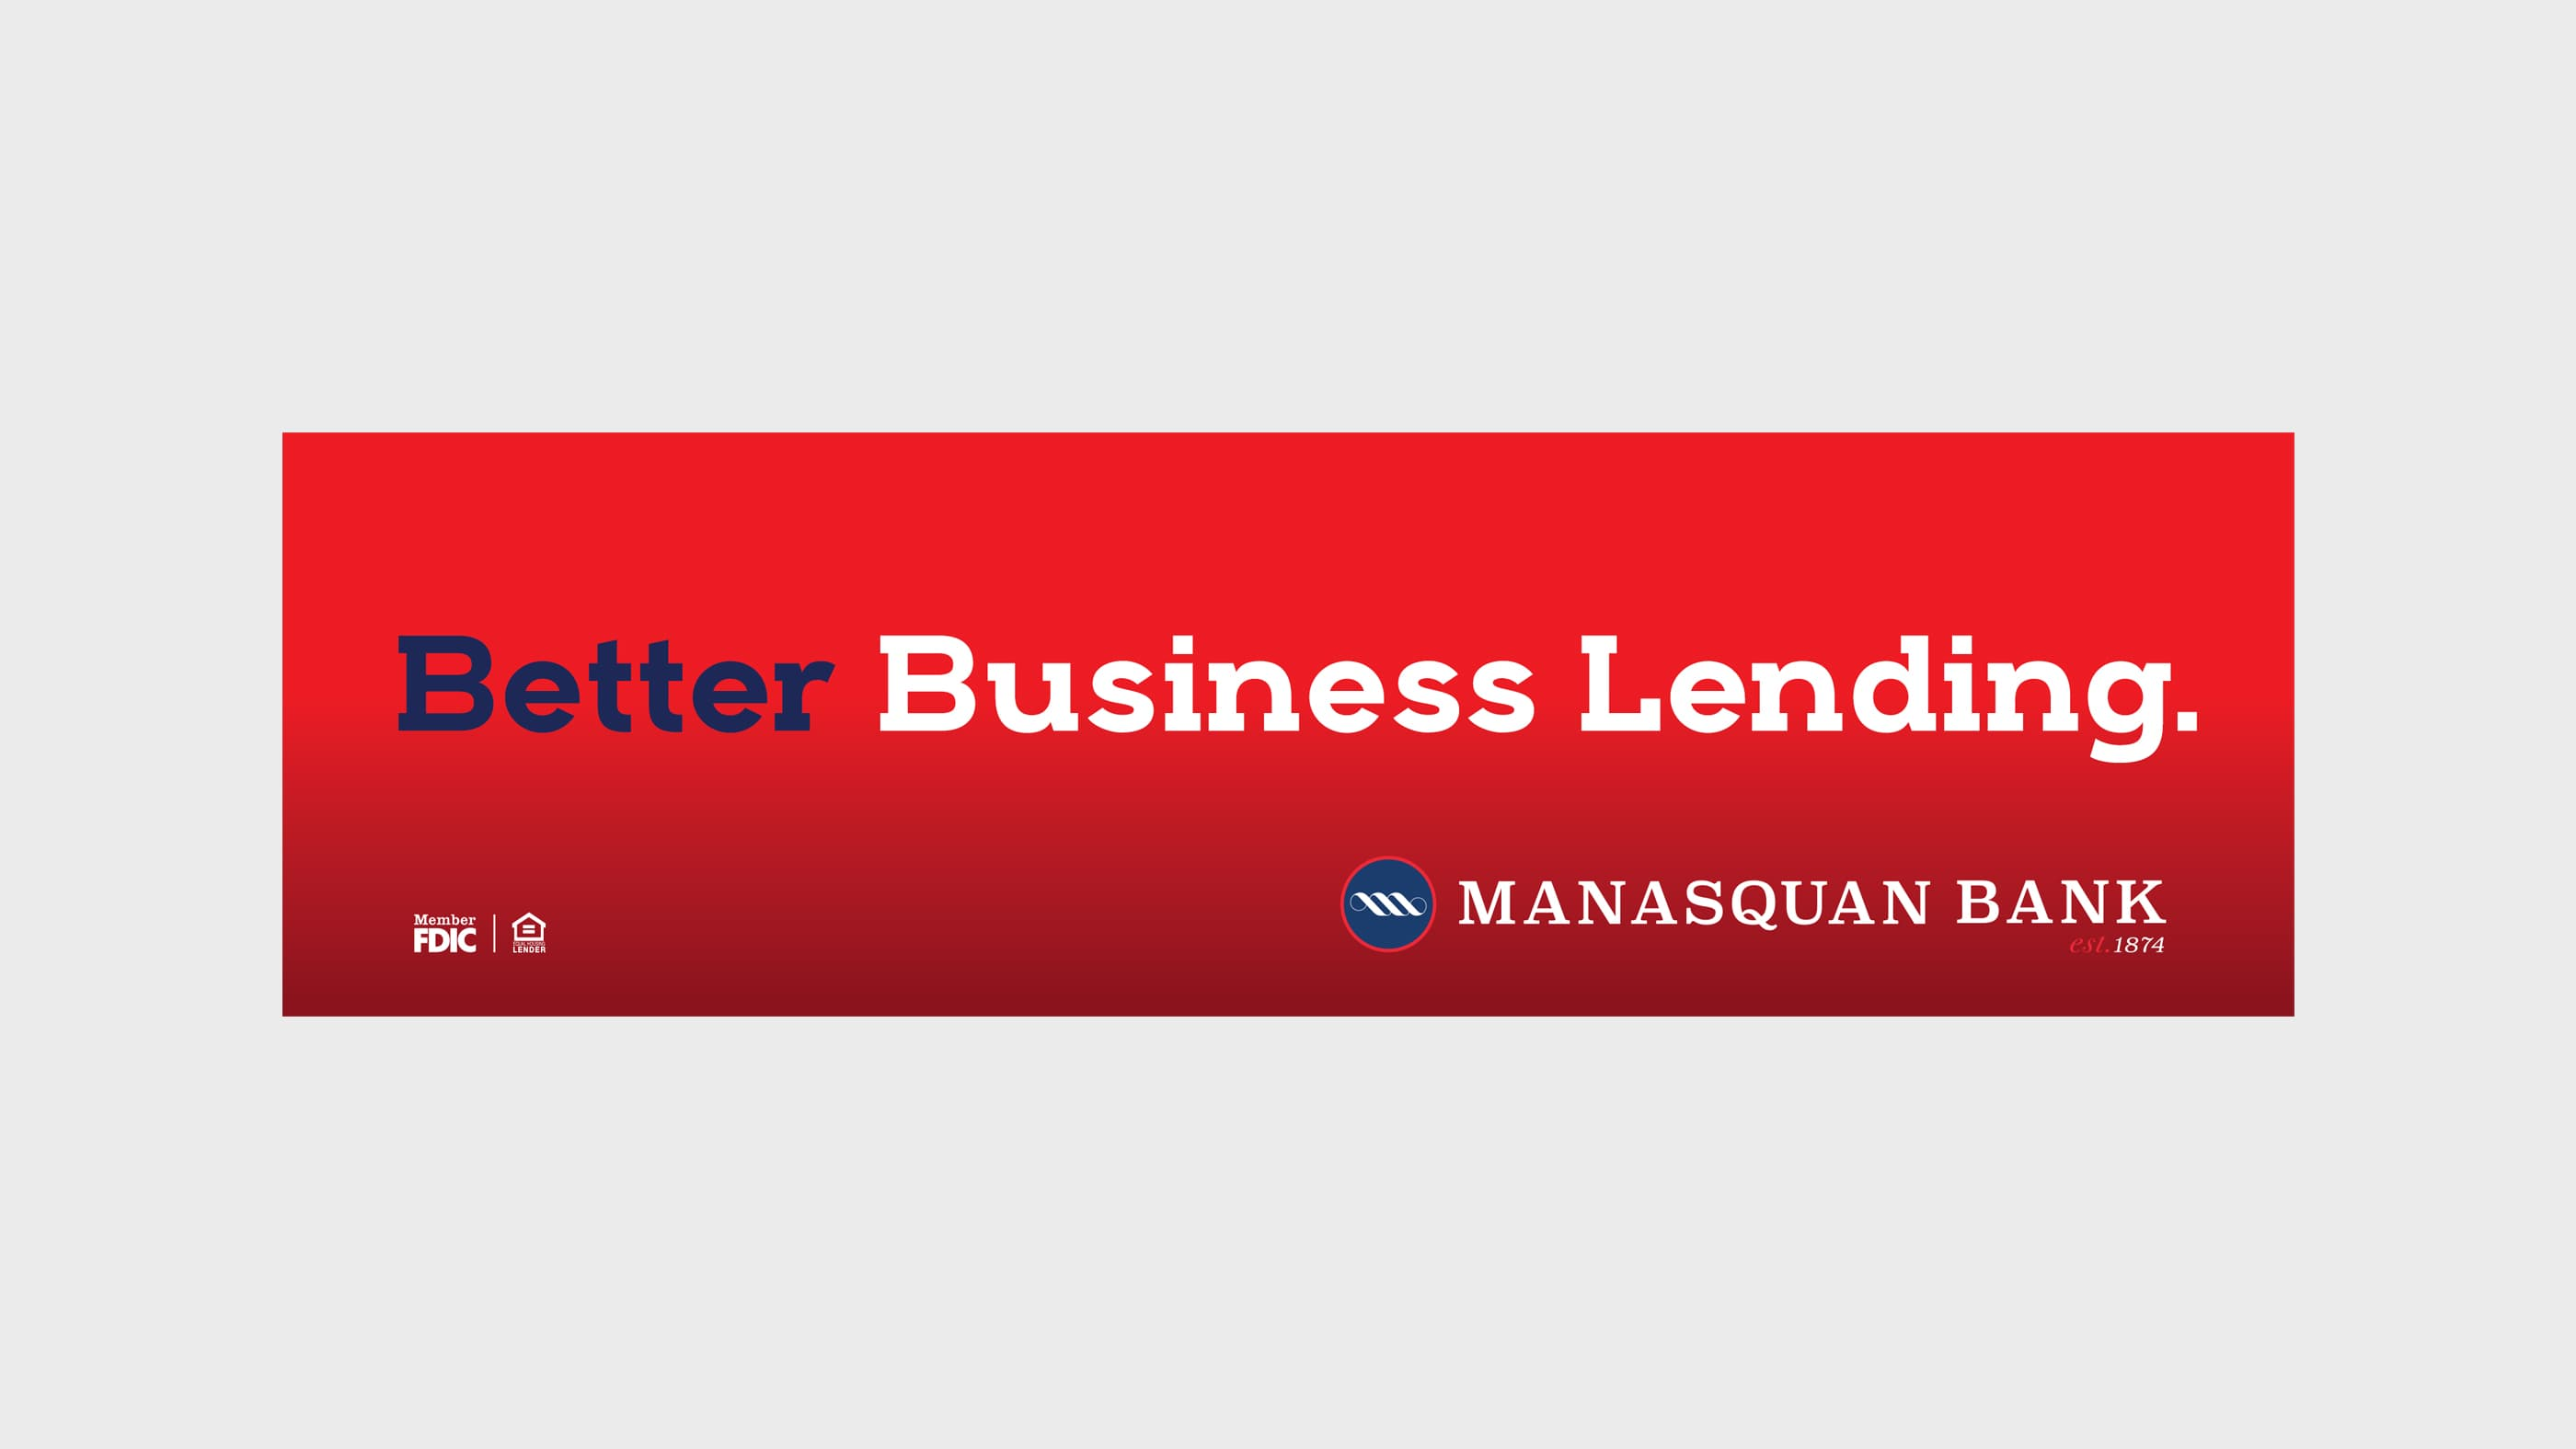 Manasquan Bank Billboard Better Business Lending